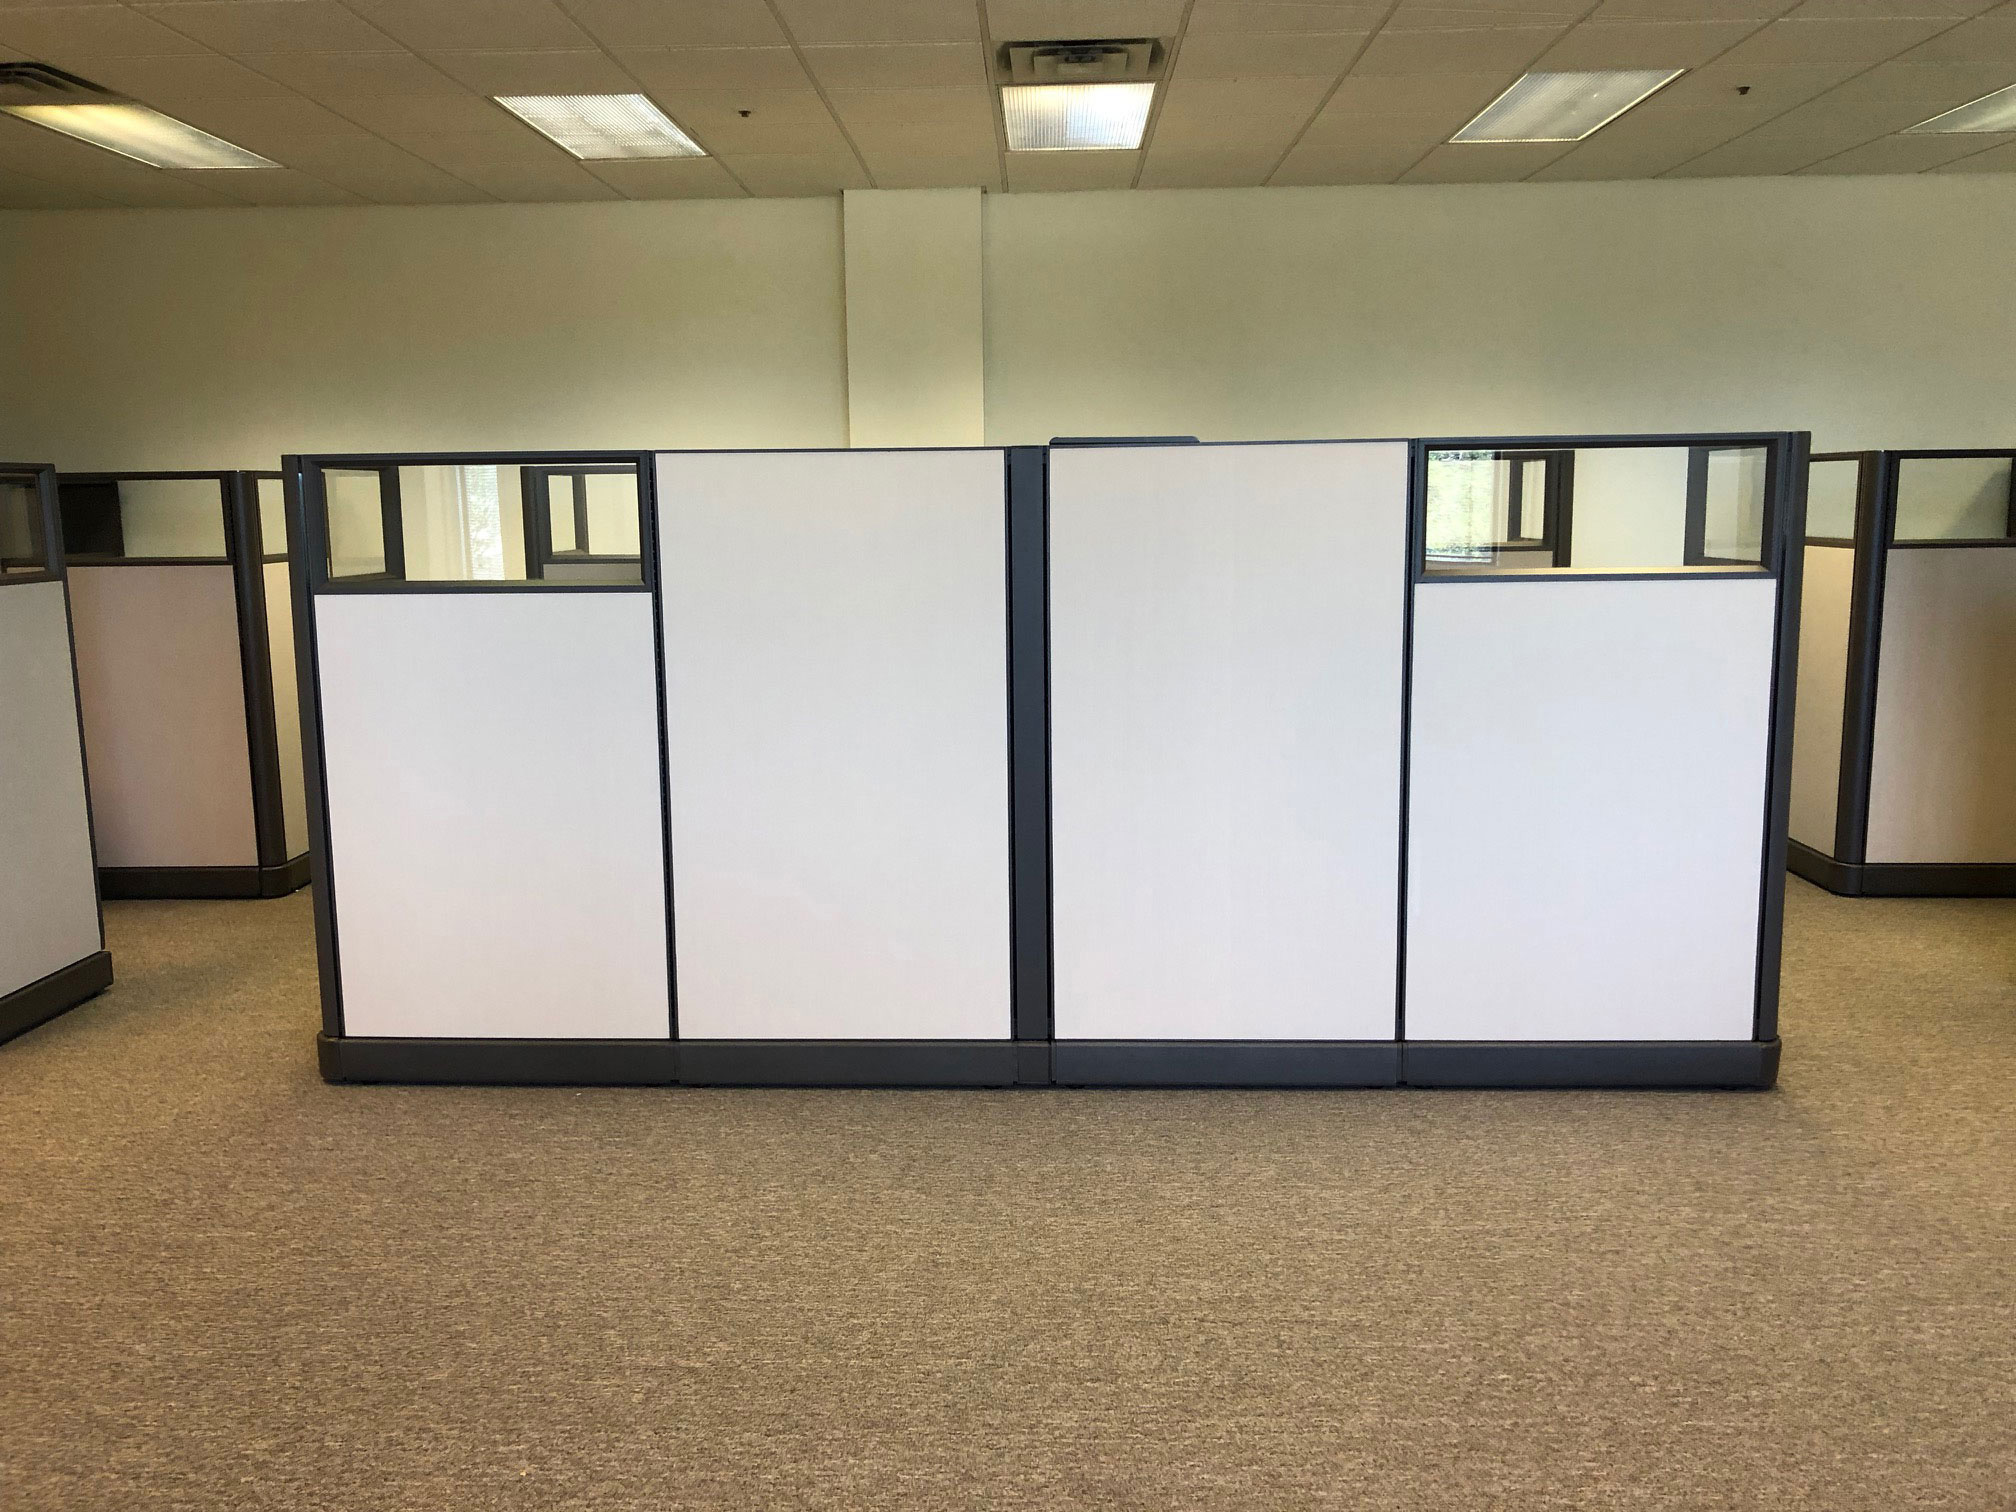 office-cubicles-for-sale-in-destin-florida.jpg